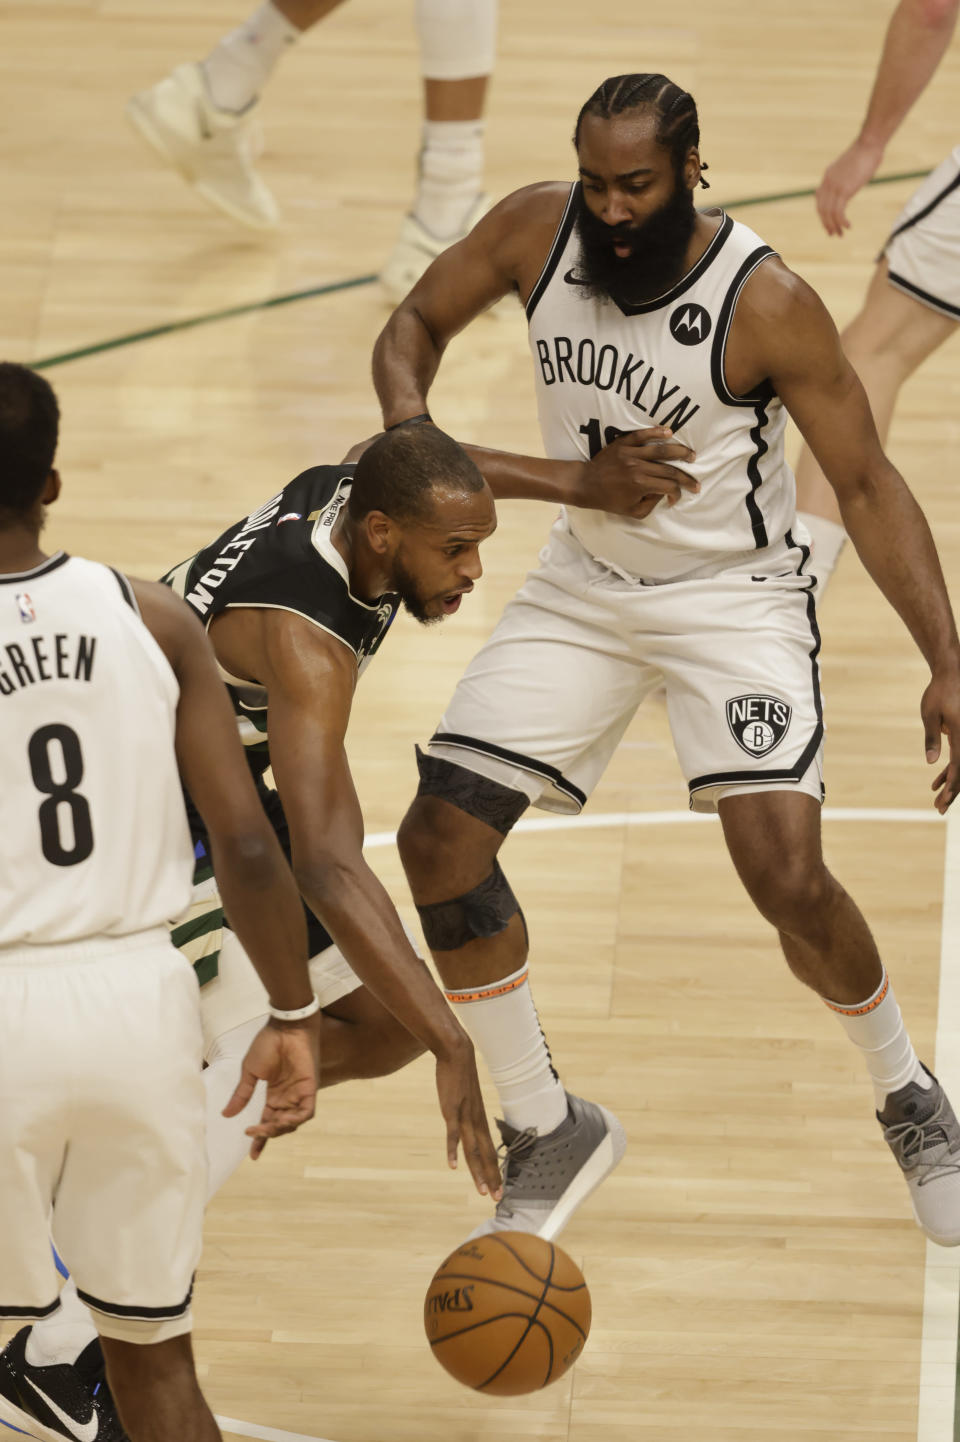 Milwaukee Bucks forward Khris Middleton, center, drives against Brooklyn Nets guard James Harden, right, during the first half of Game 6 of a second-round NBA basketball playoff series Thursday, June 17, 2021, in Milwaukee. (AP Photo/Jeffrey Phelps)